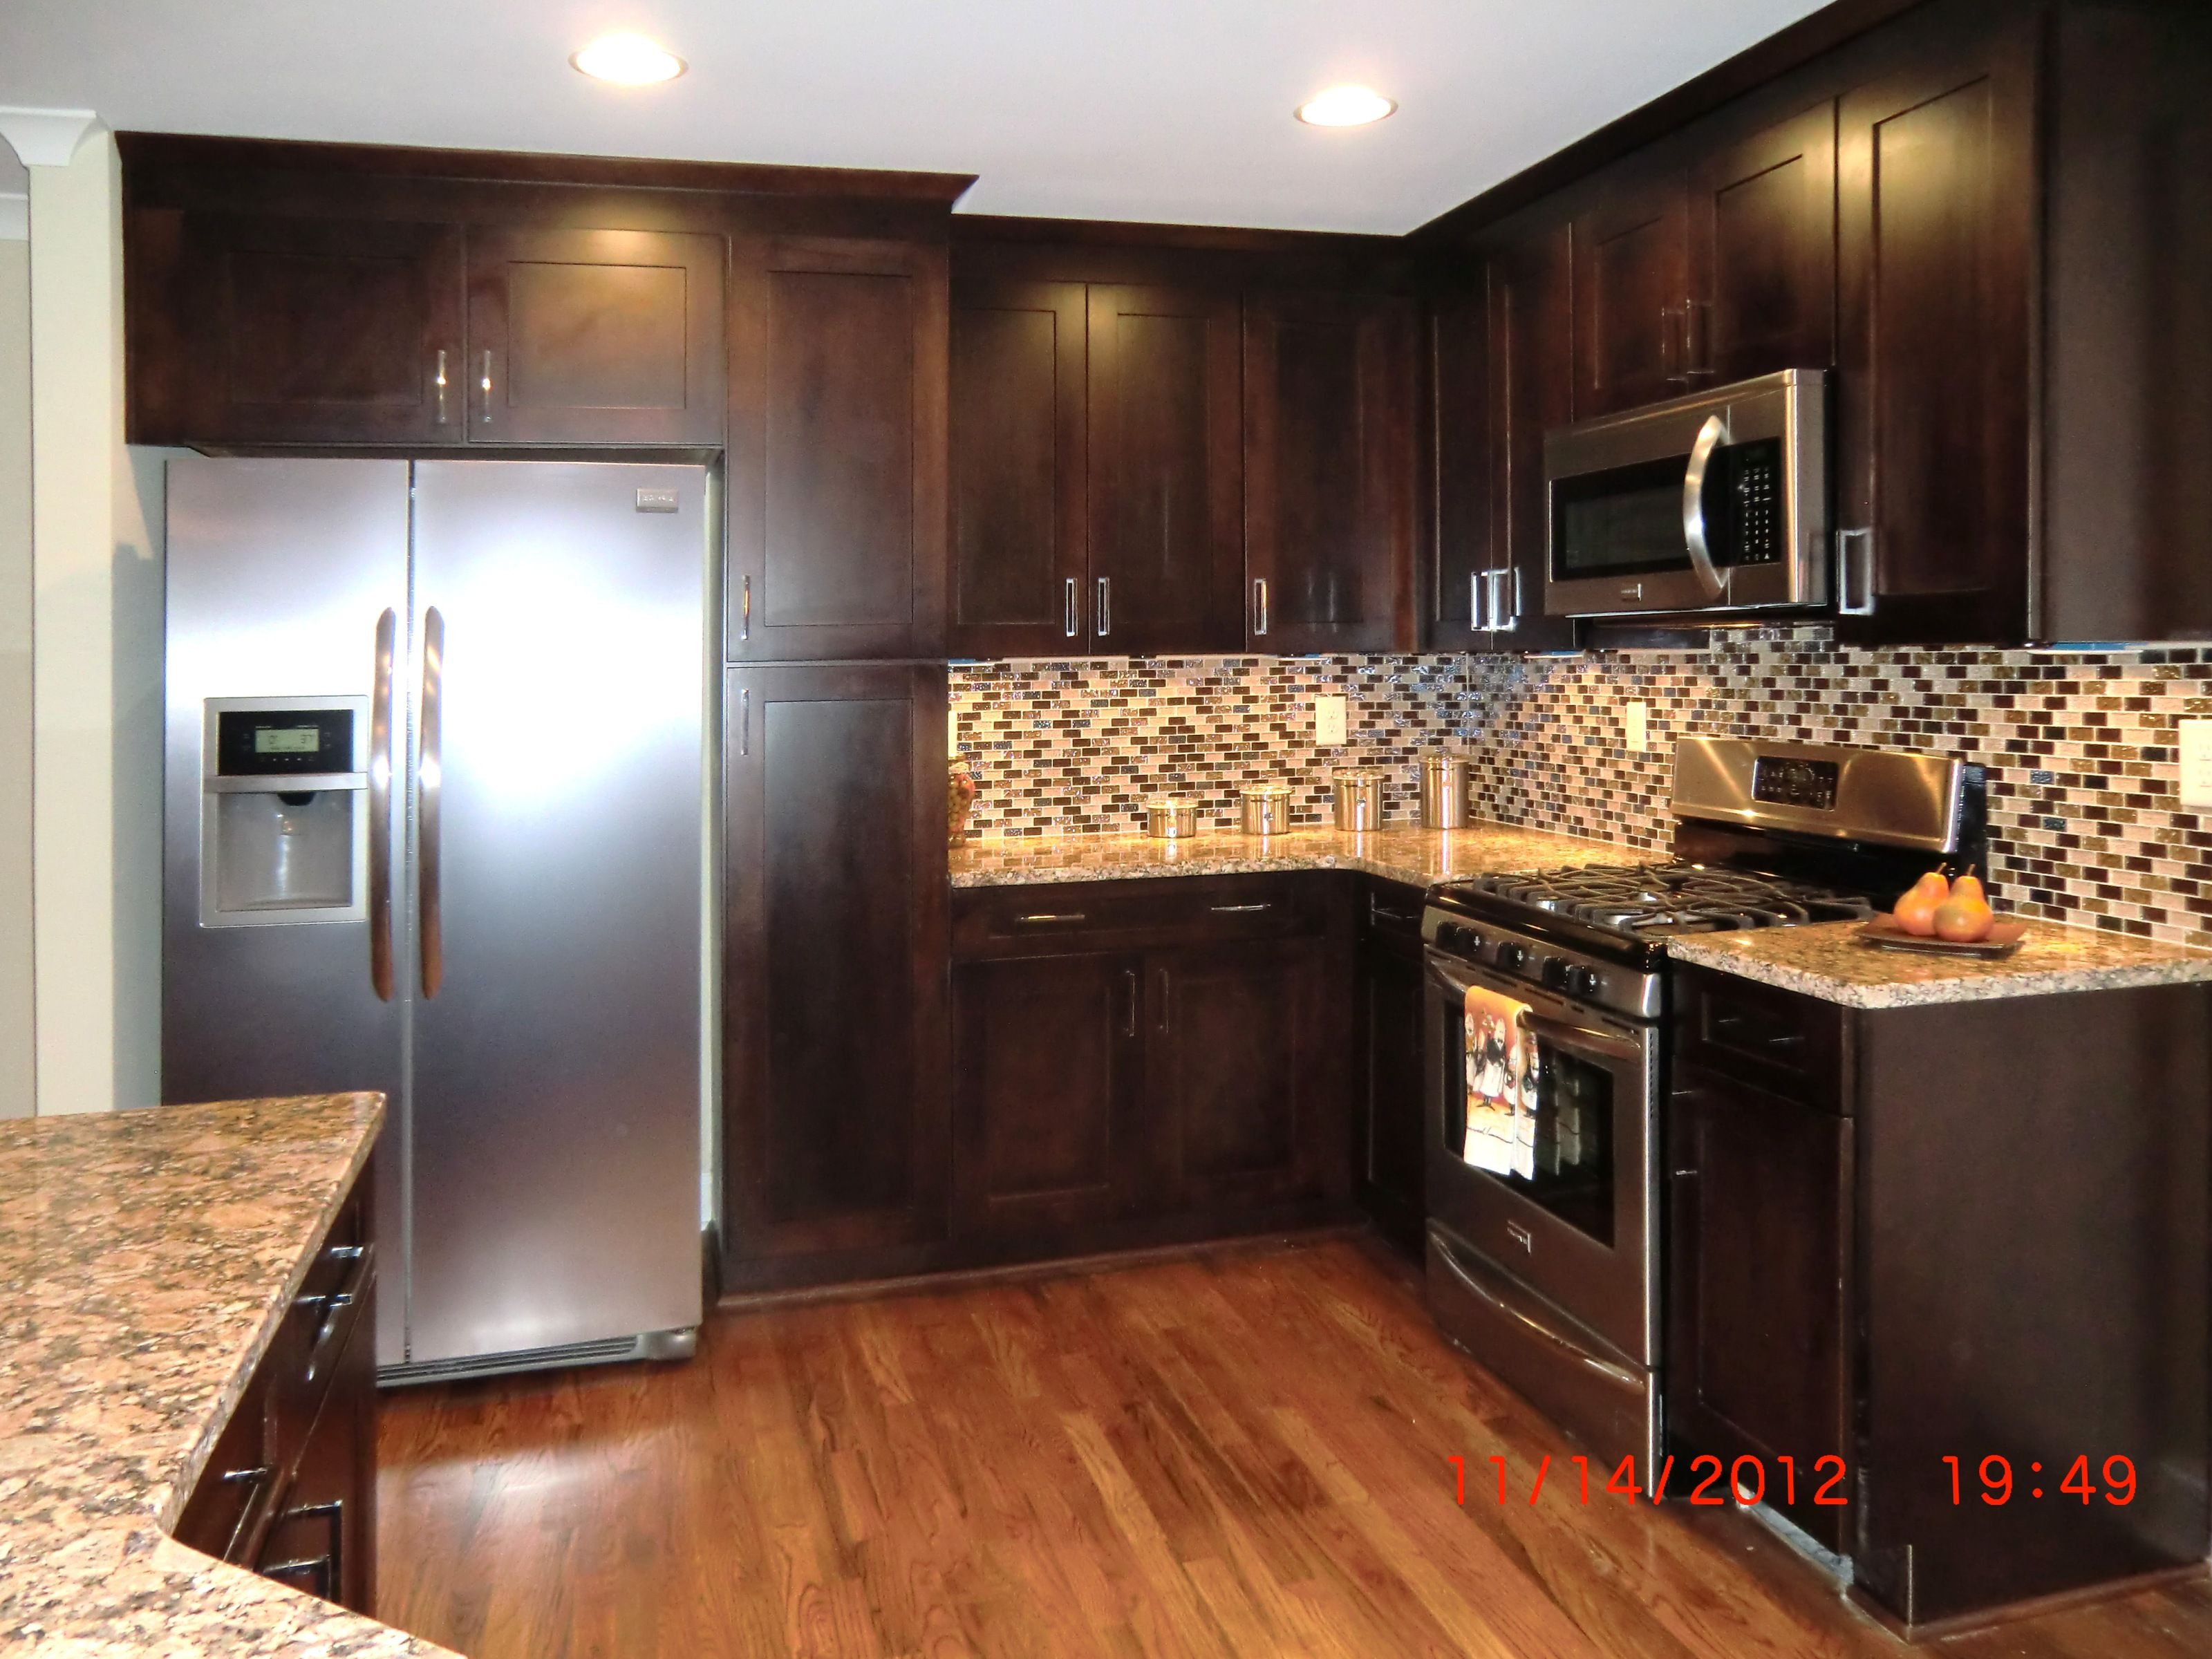 Kitchen Cabinets With Dark Wood Floors Ssurrg White Shaker Kitchen Cabinets Dark Wood F Dark Brown Kitchen Cabinets Dark Kitchen Cabinets Dark Brown Cabinets